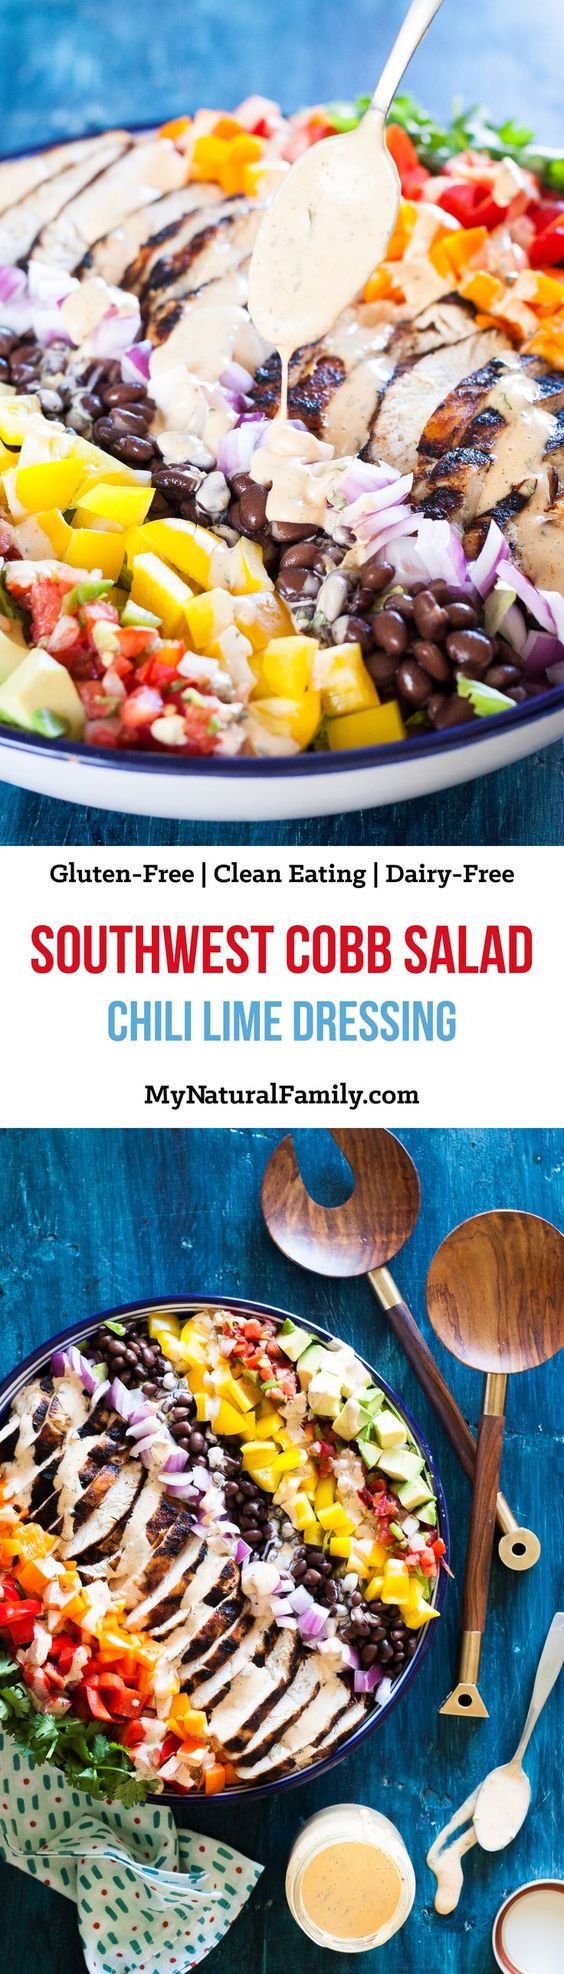 Southwest Cobb Salad with Smokey Chili Lime Dressing Recipe {Paleo, Gluten-Free, Clean Eating, Dairy-Free}